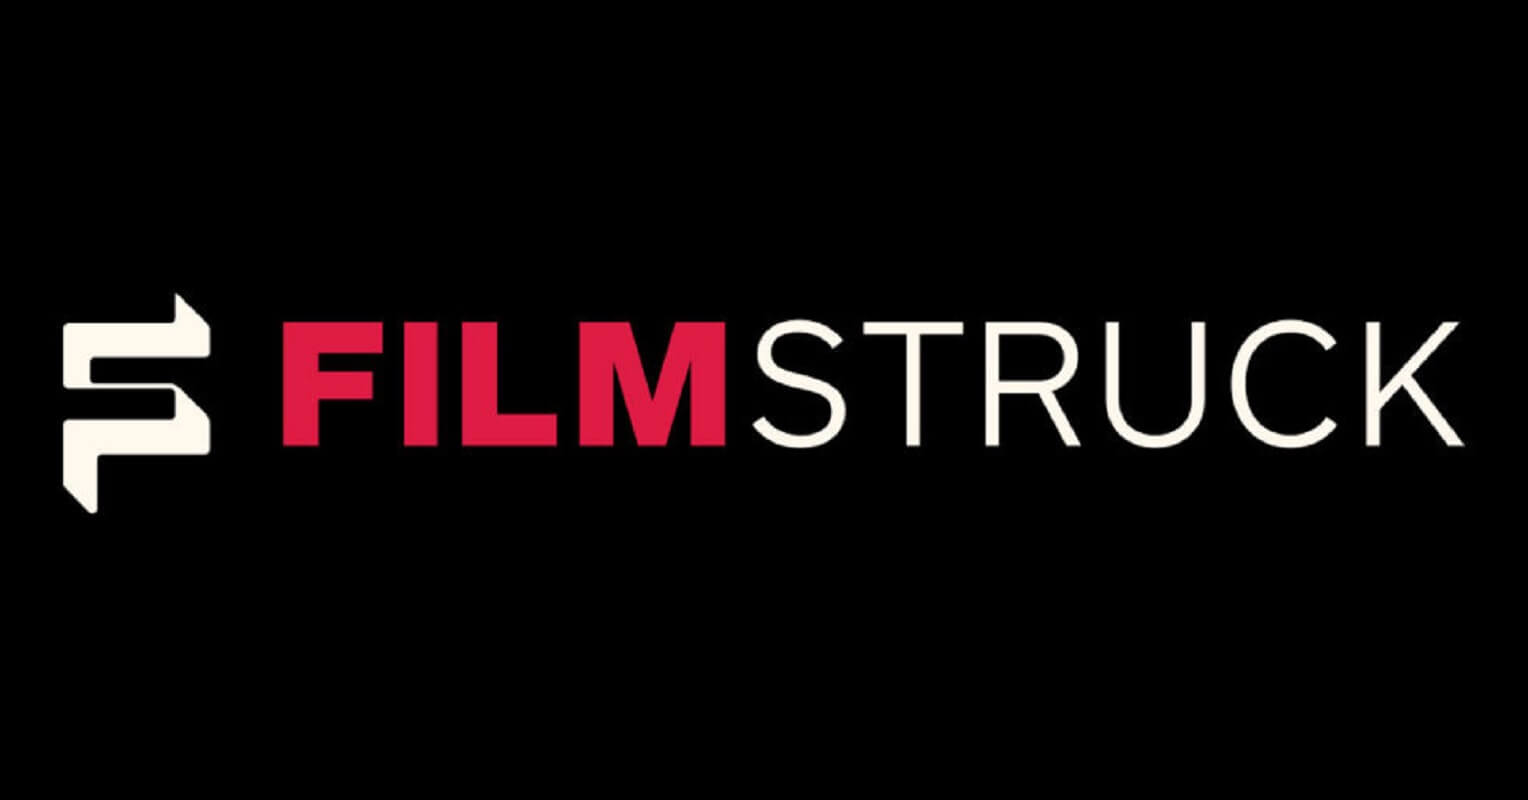 filmstruck shuts down services in november